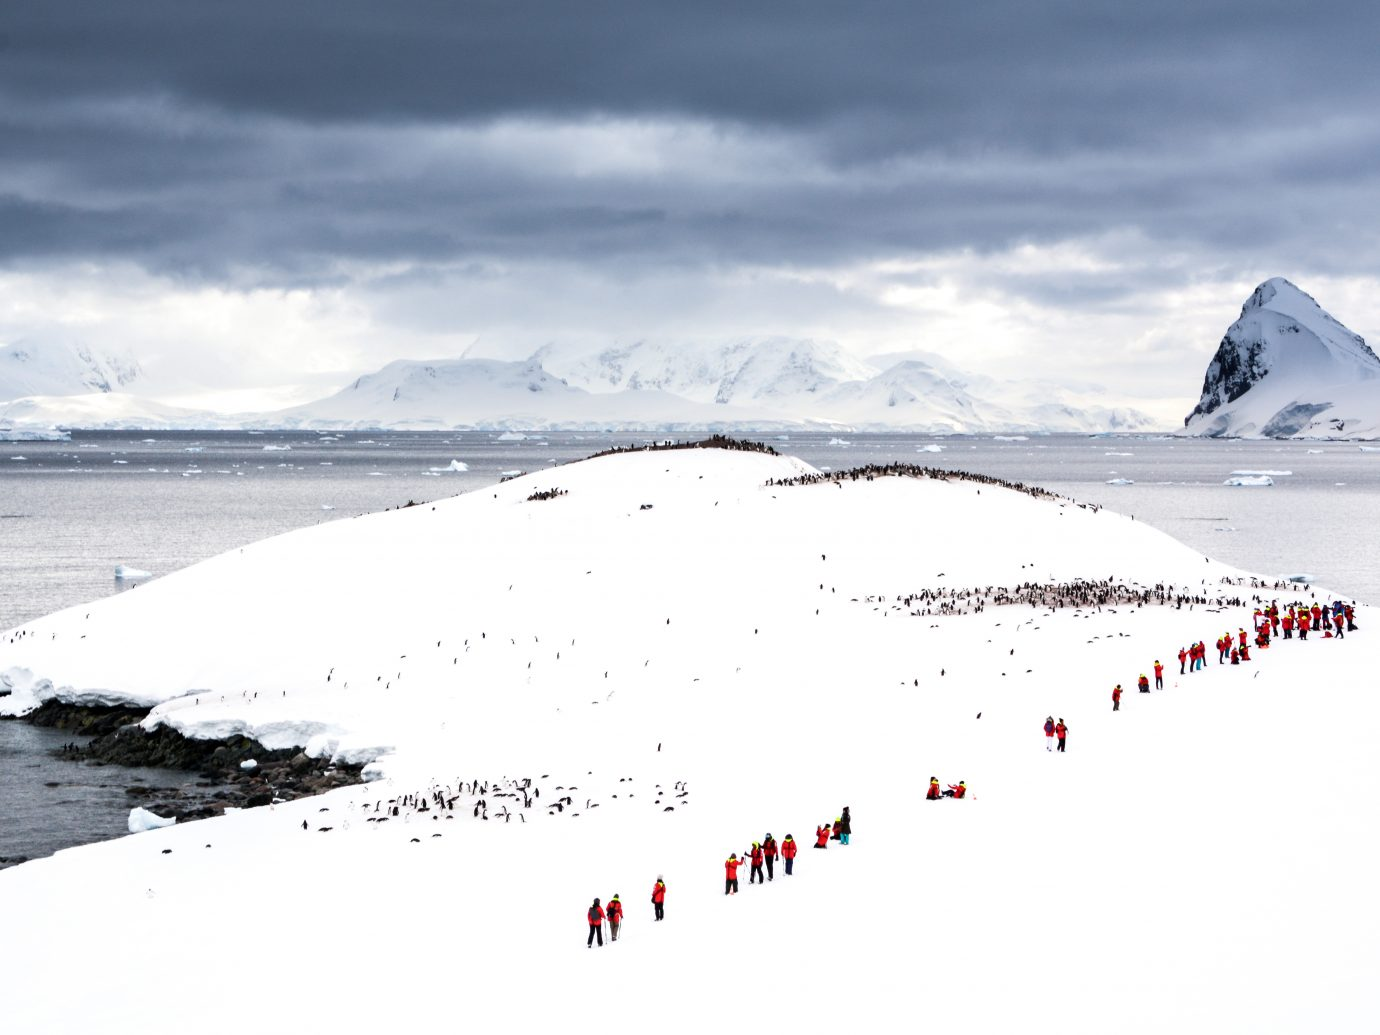 Tourists and Penguins on Cuverville Island